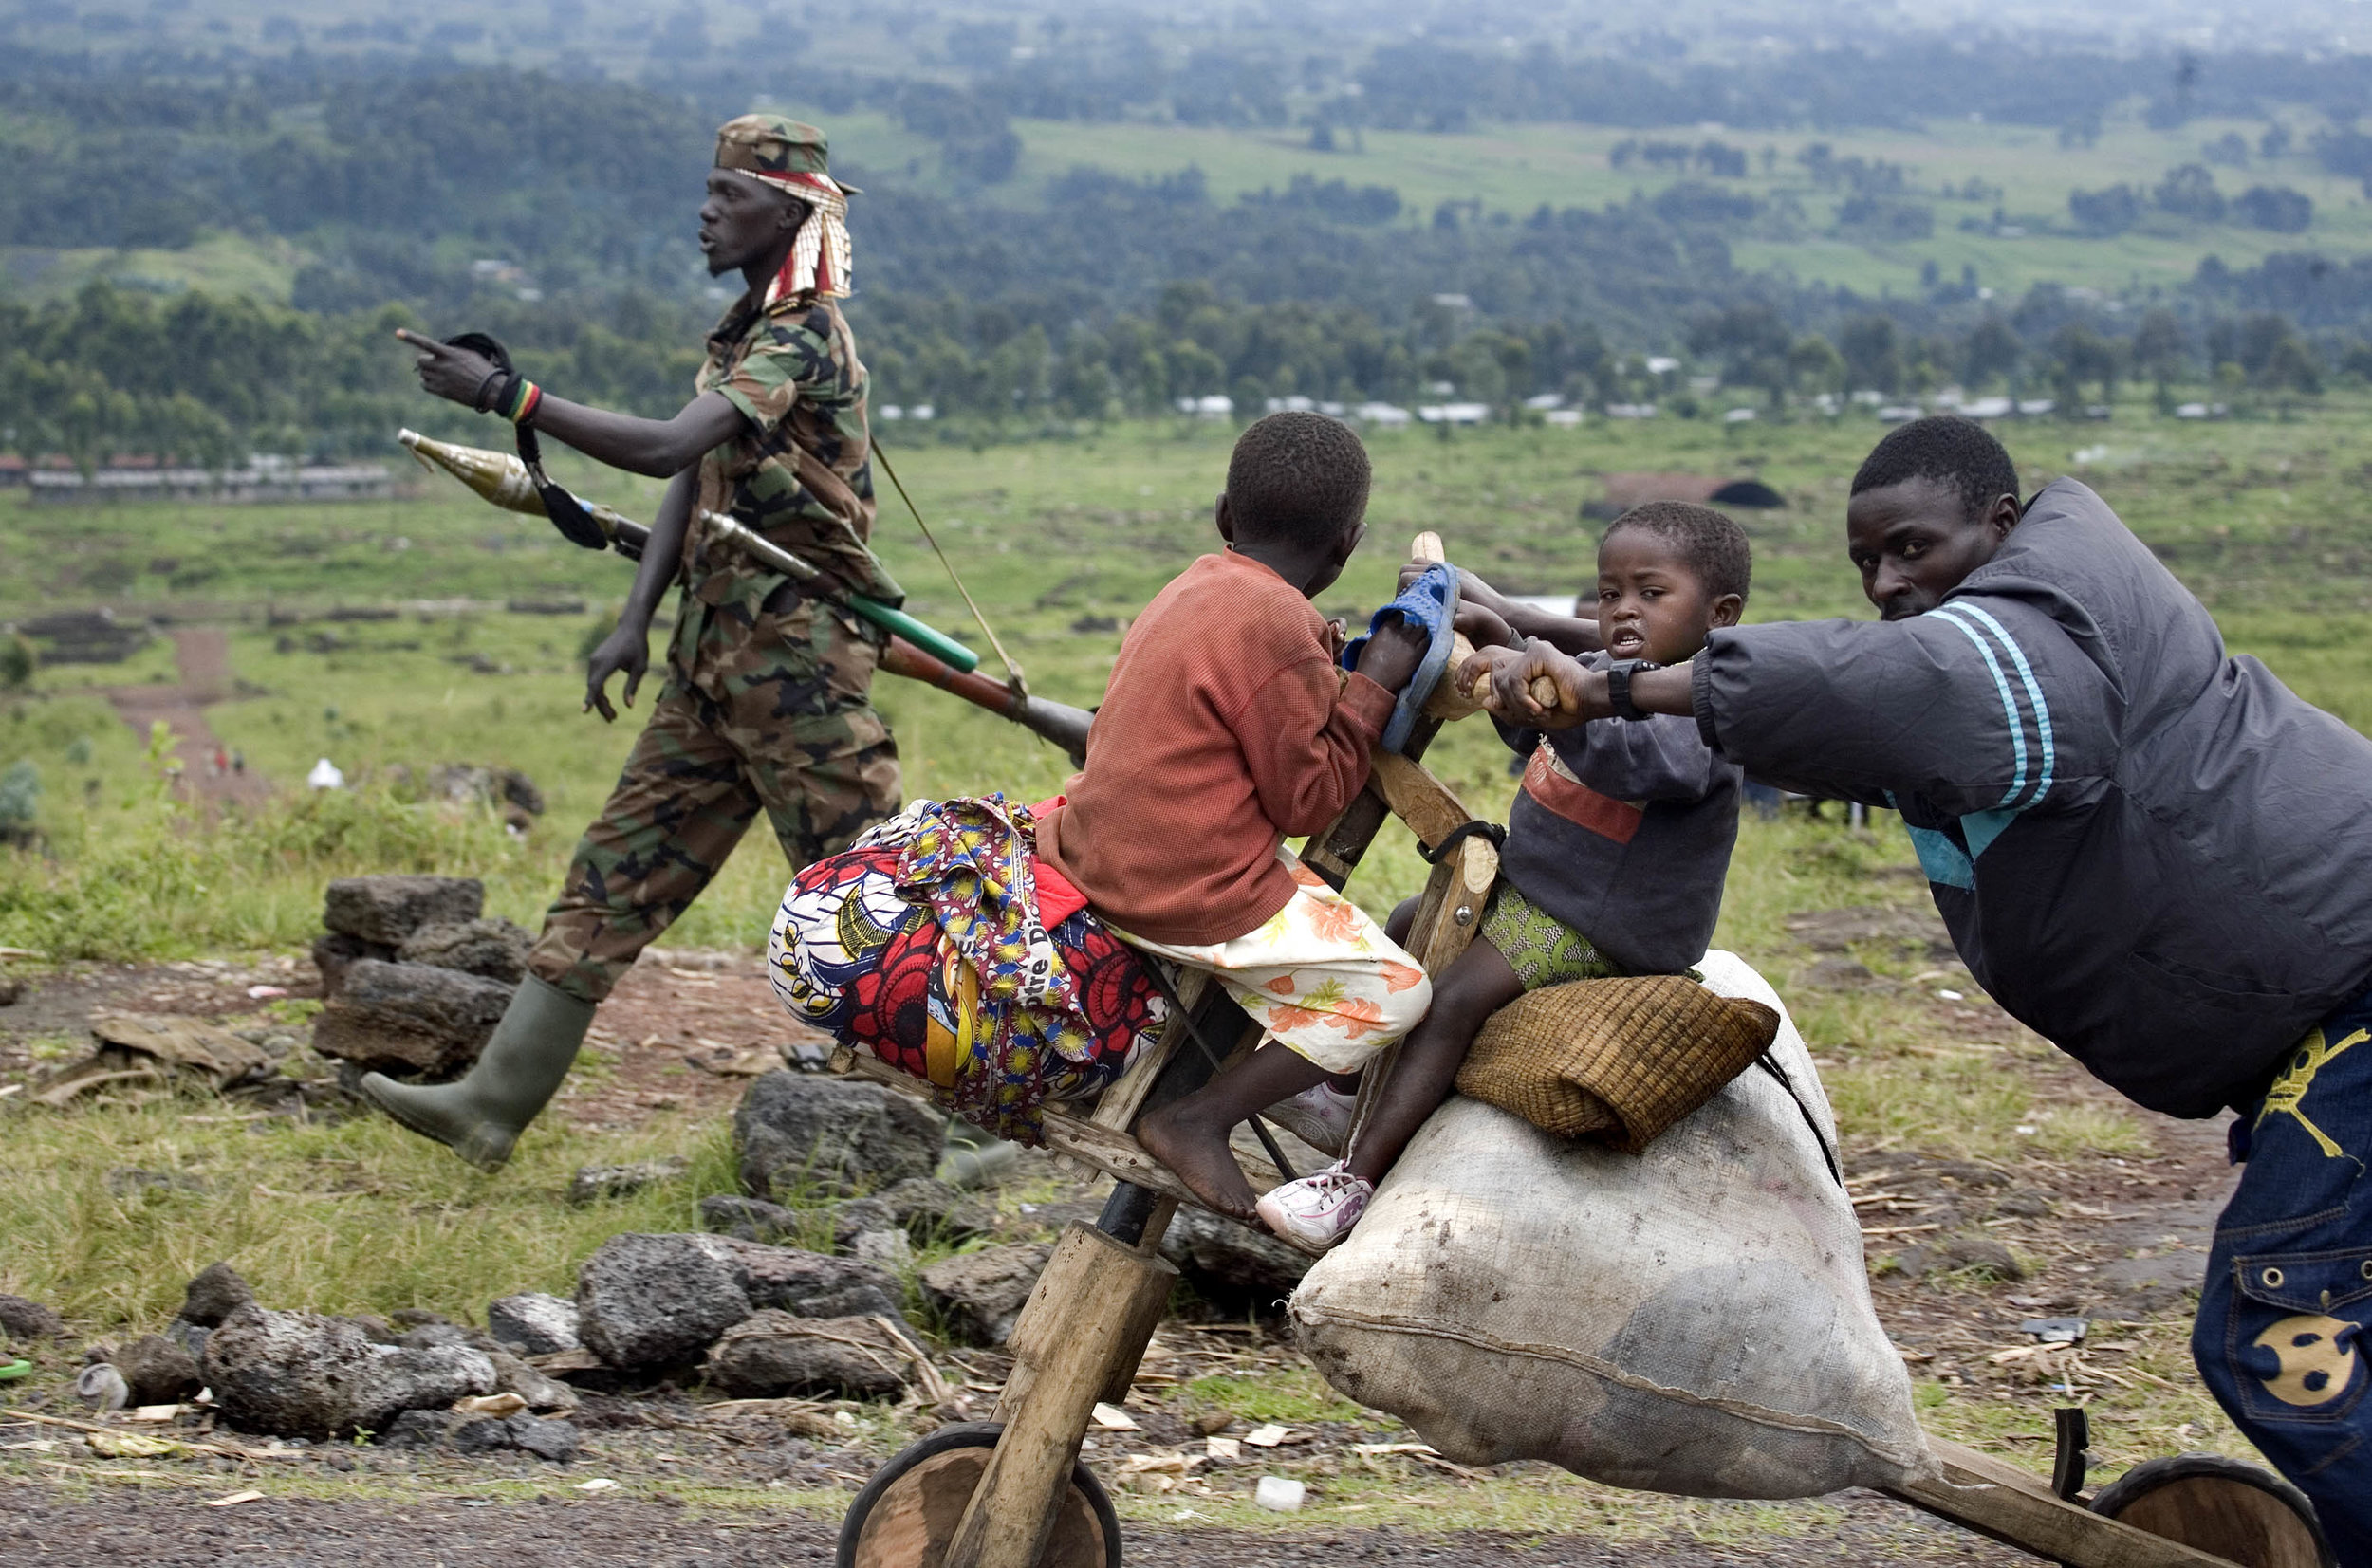 Displaced people returning to their homes outside of Goma walk past a CNDP soldier in rebel controlled territory. Fighting escalated in recent weeks between the rebel group CNDP, the National Congress for the Defense of the People, and the Congolese army, displacing tens of thousands of people.